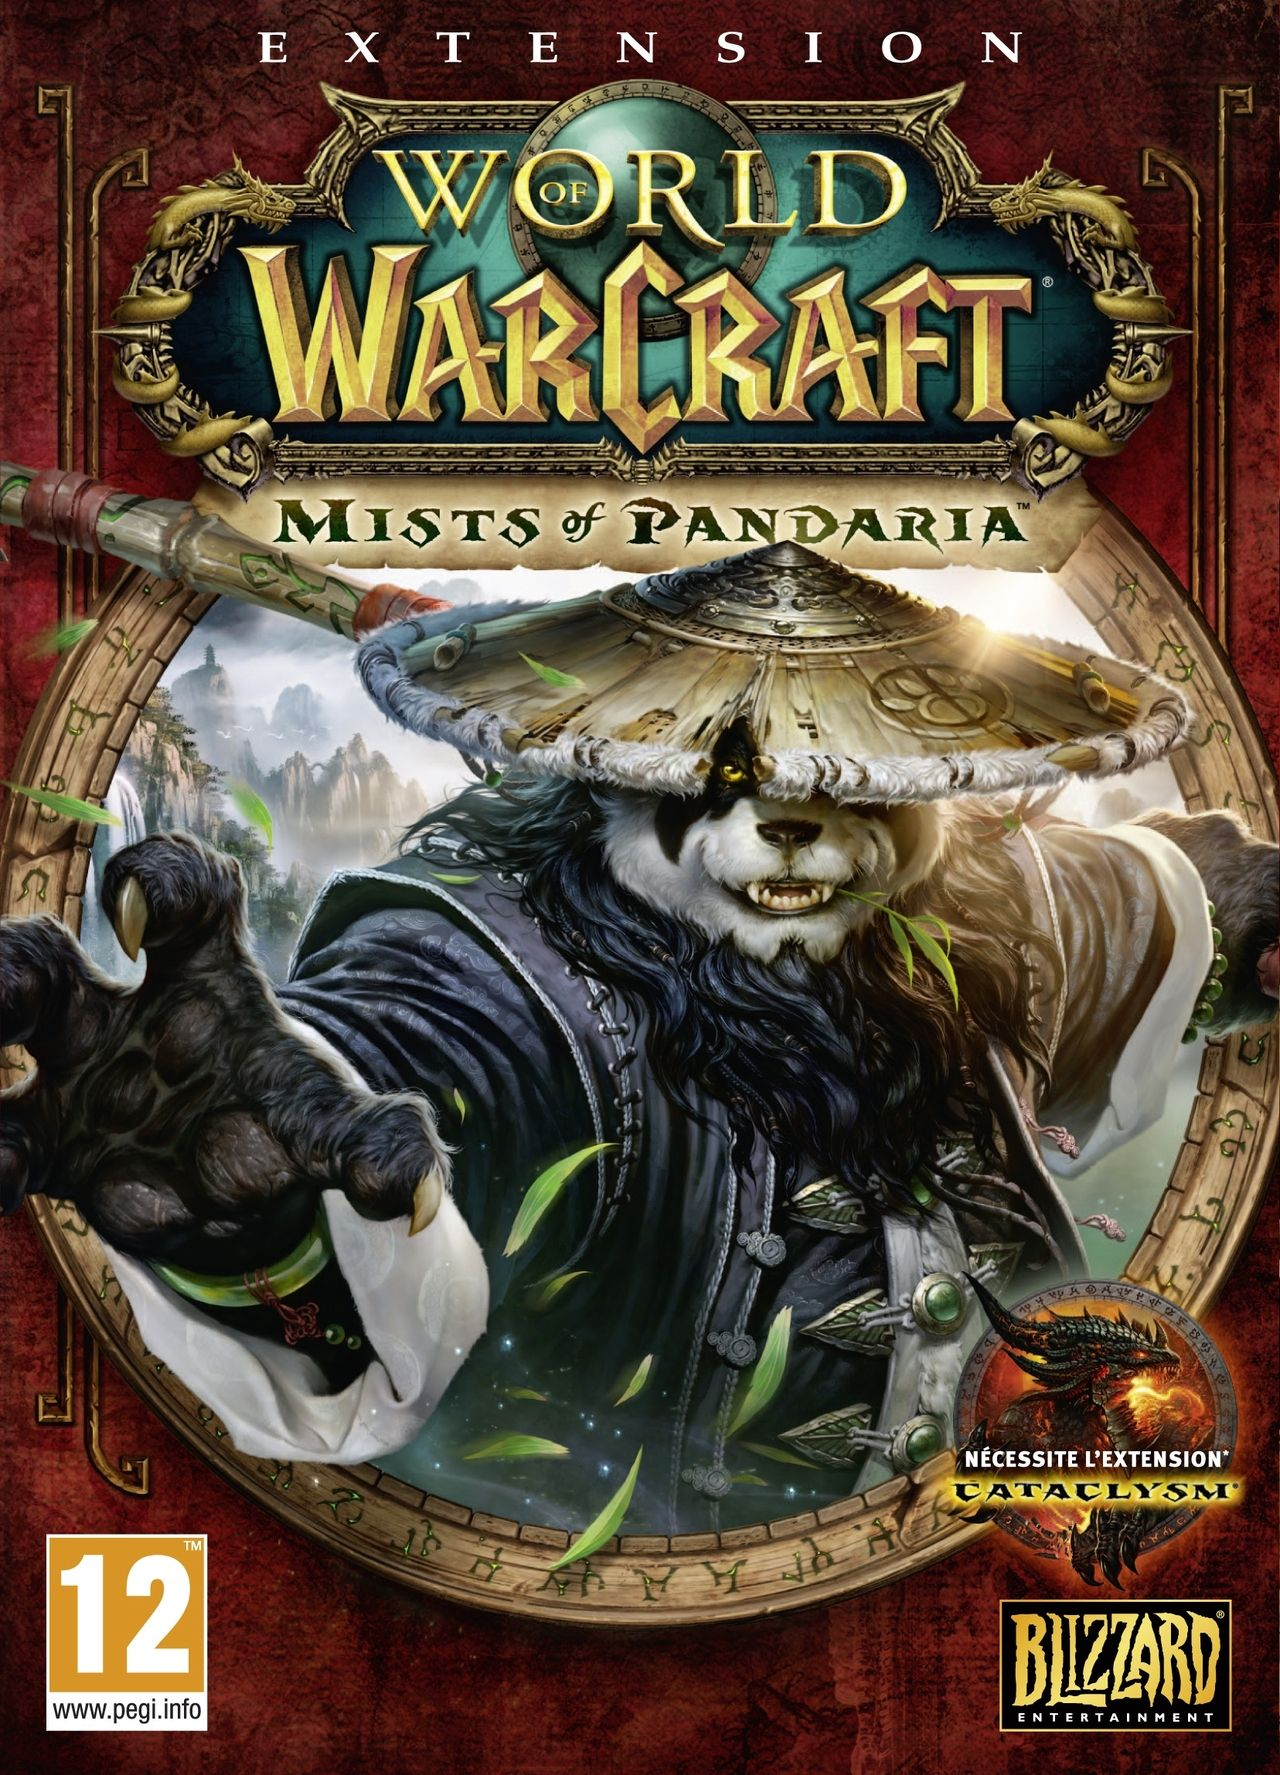 World of warcraft mists of pandaria vital games pinterest